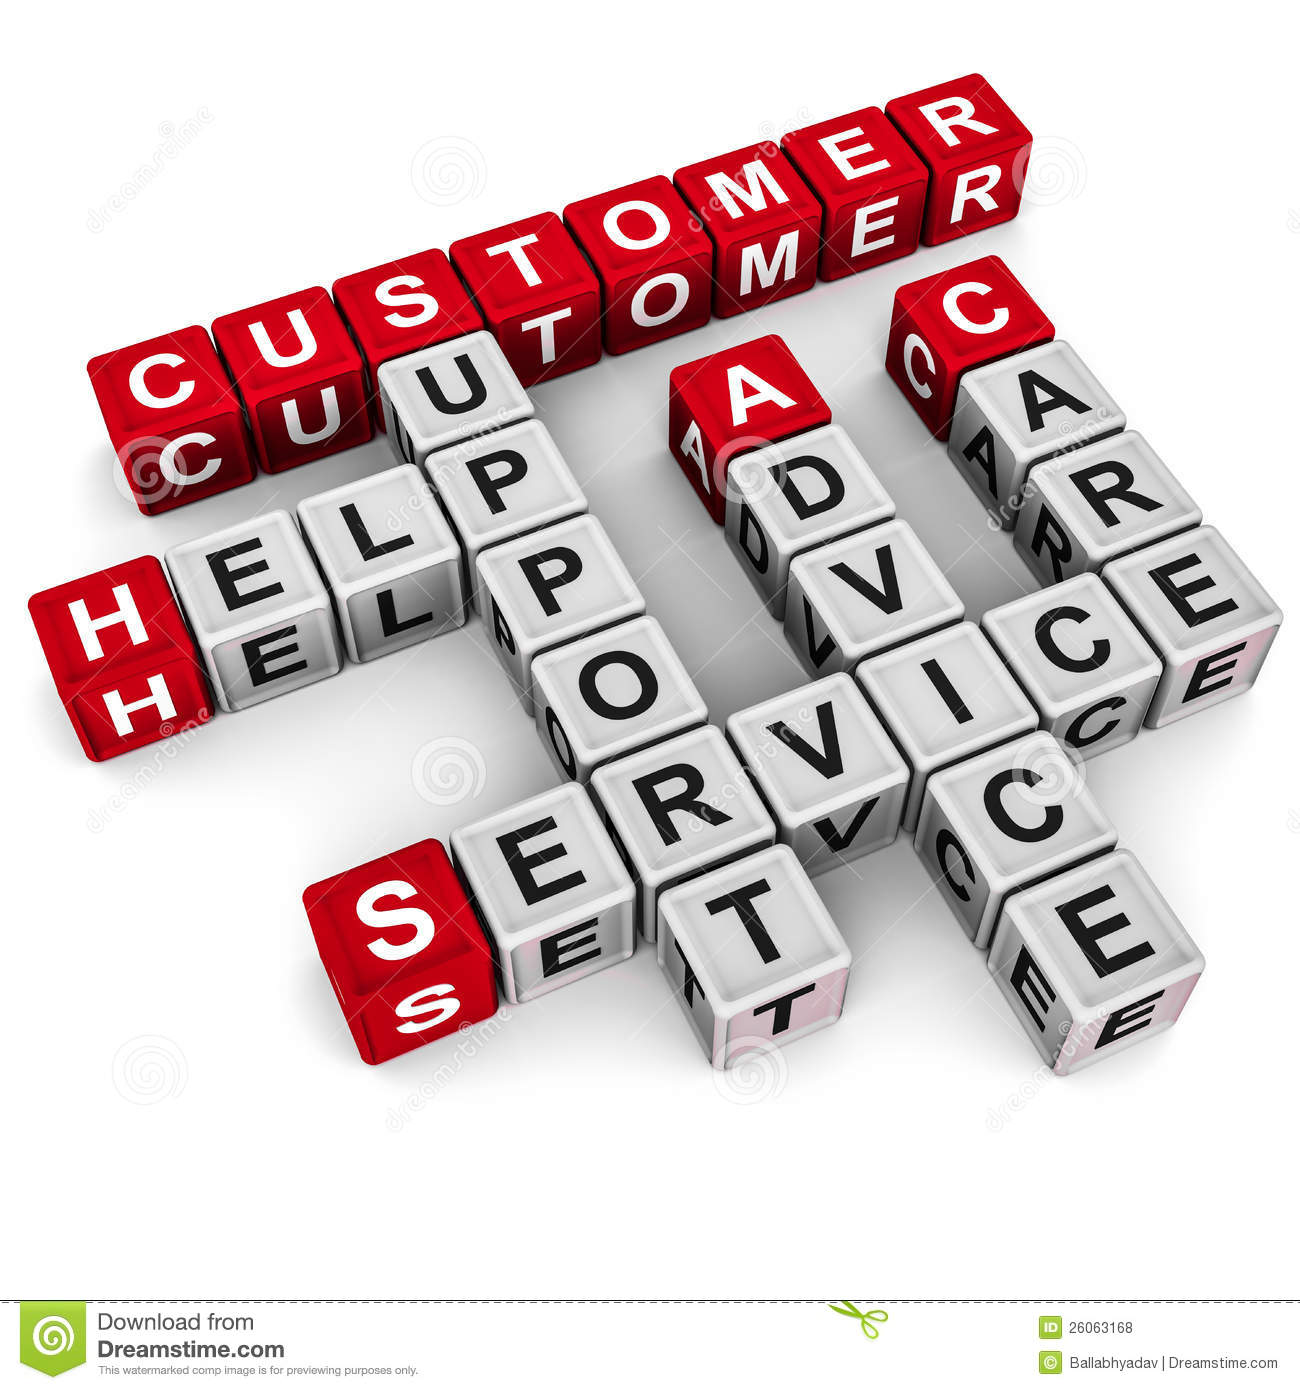 Crossword of customer support words, like care help advice service and